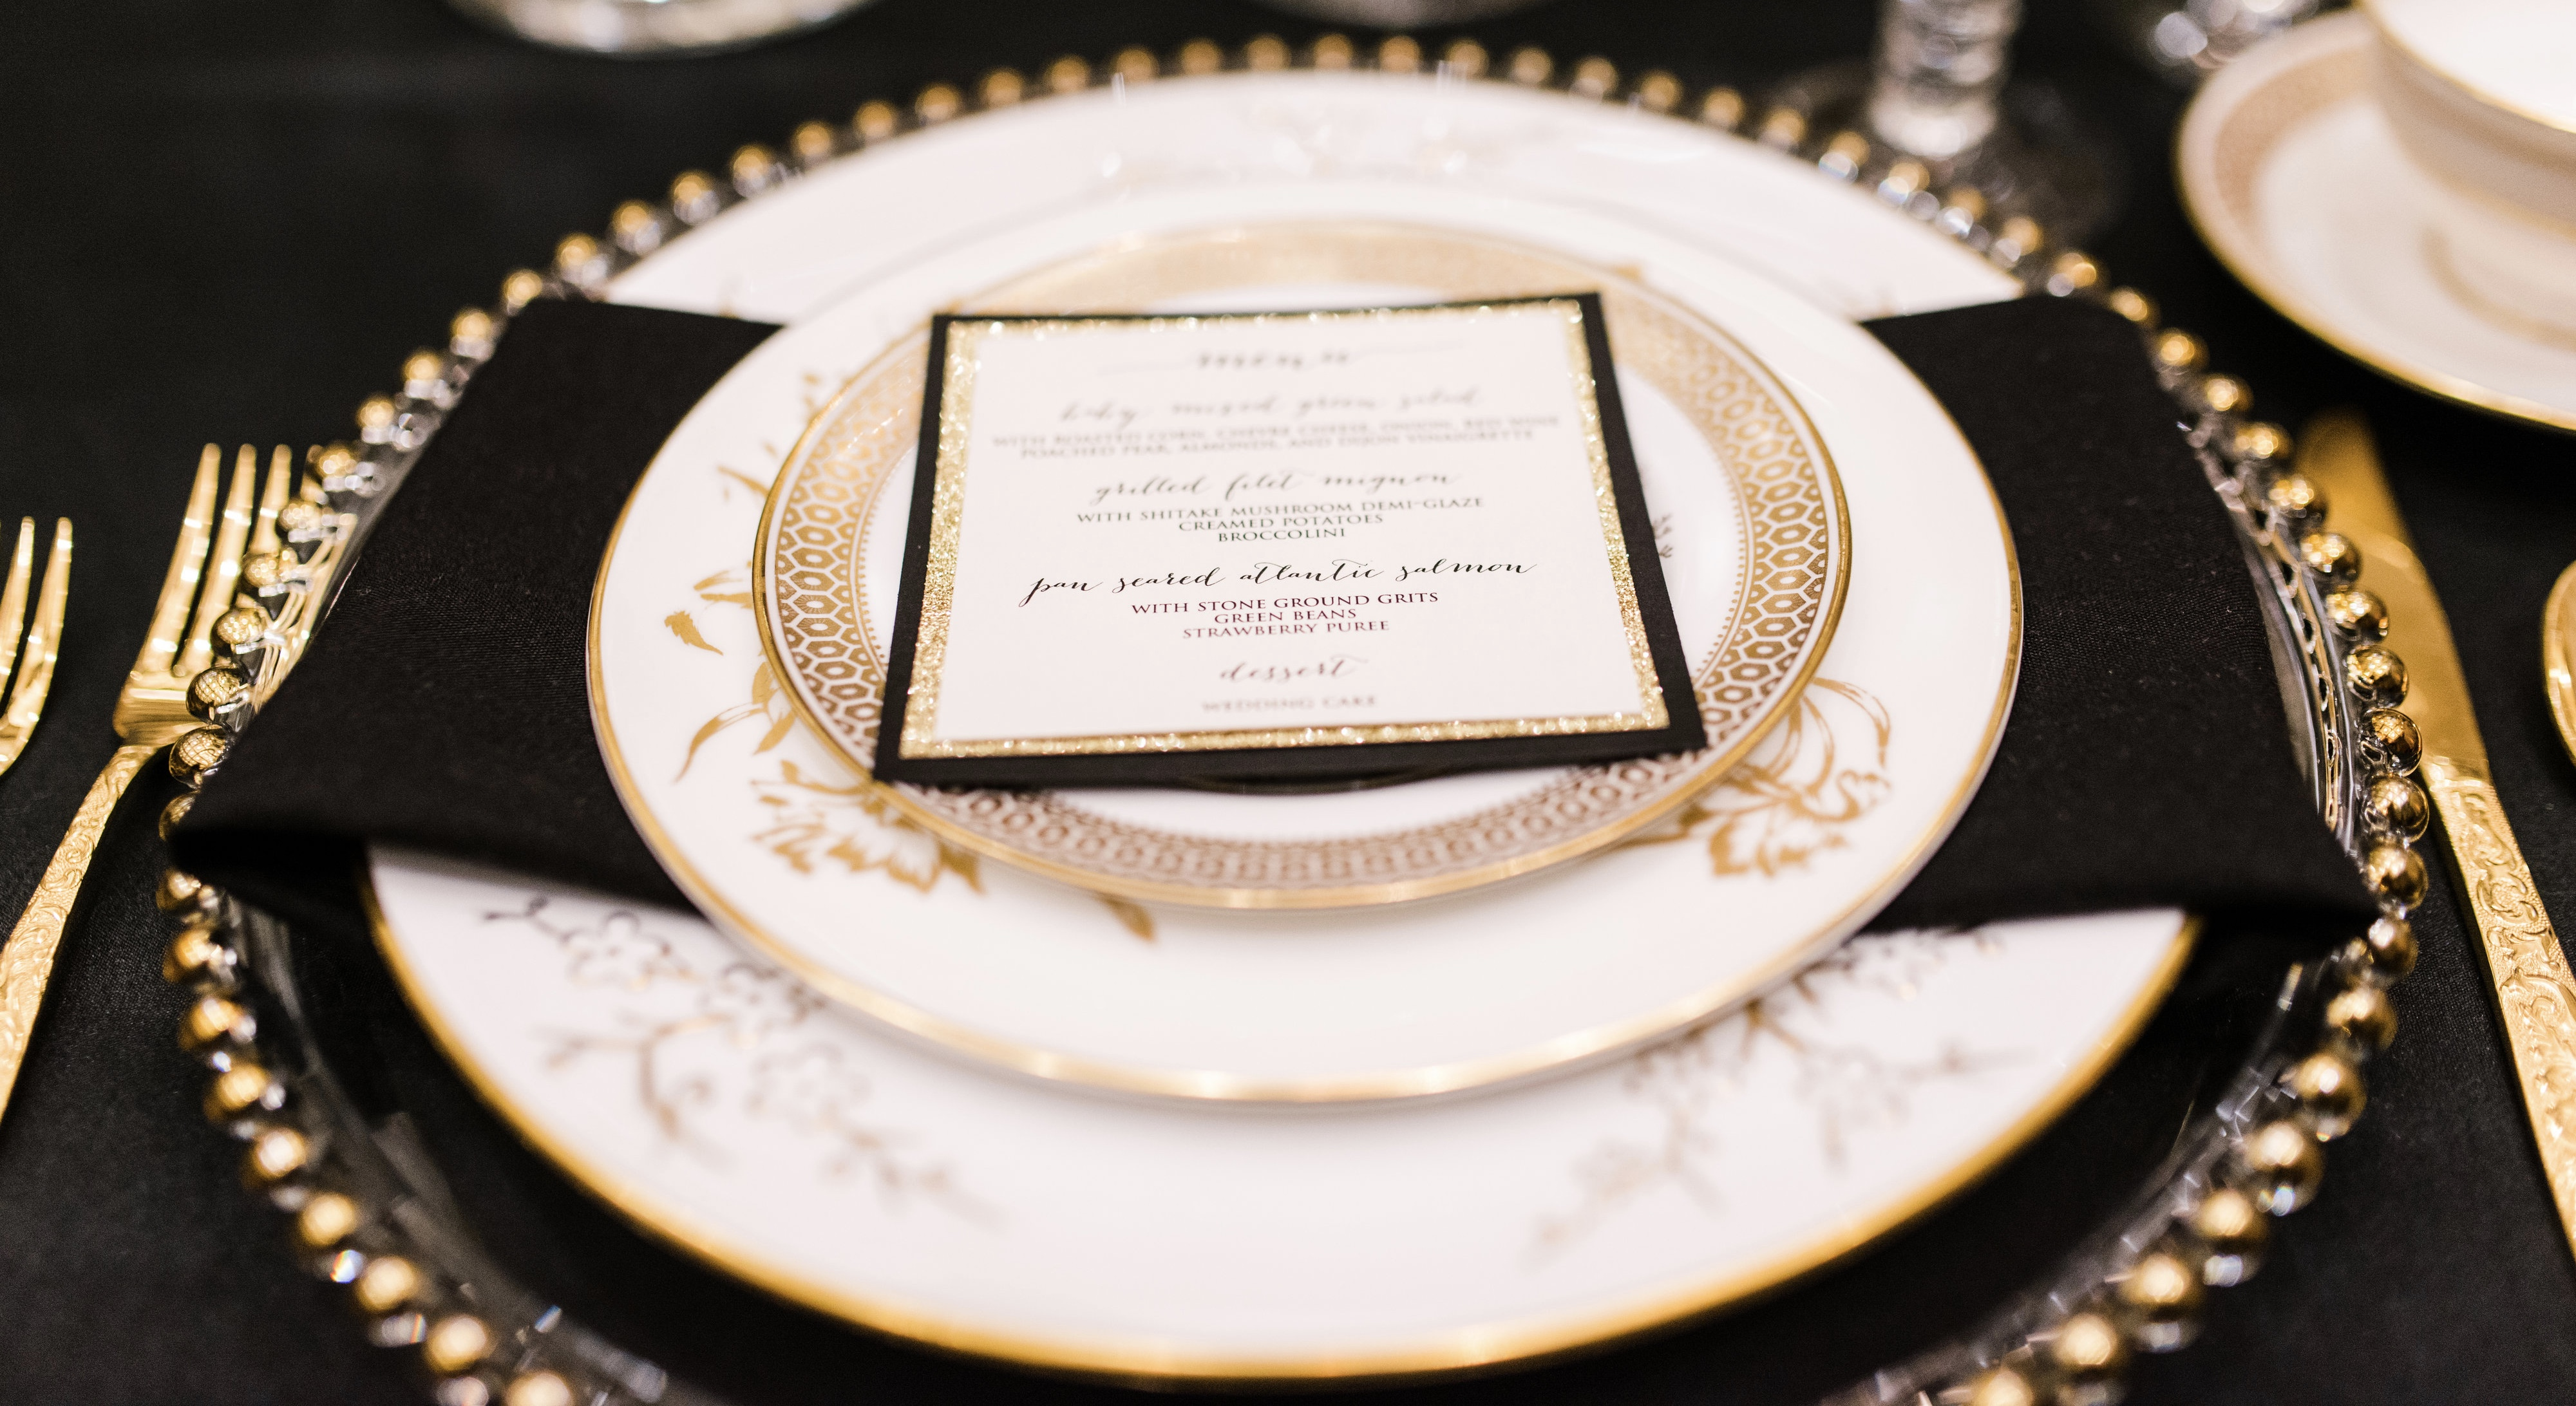 Vintage tableware rental options from Tea and Old Roses at The Harbert Center in Birmingham, Alabama. Our Alabama wedding rentals will be a beautiful addition to your event!